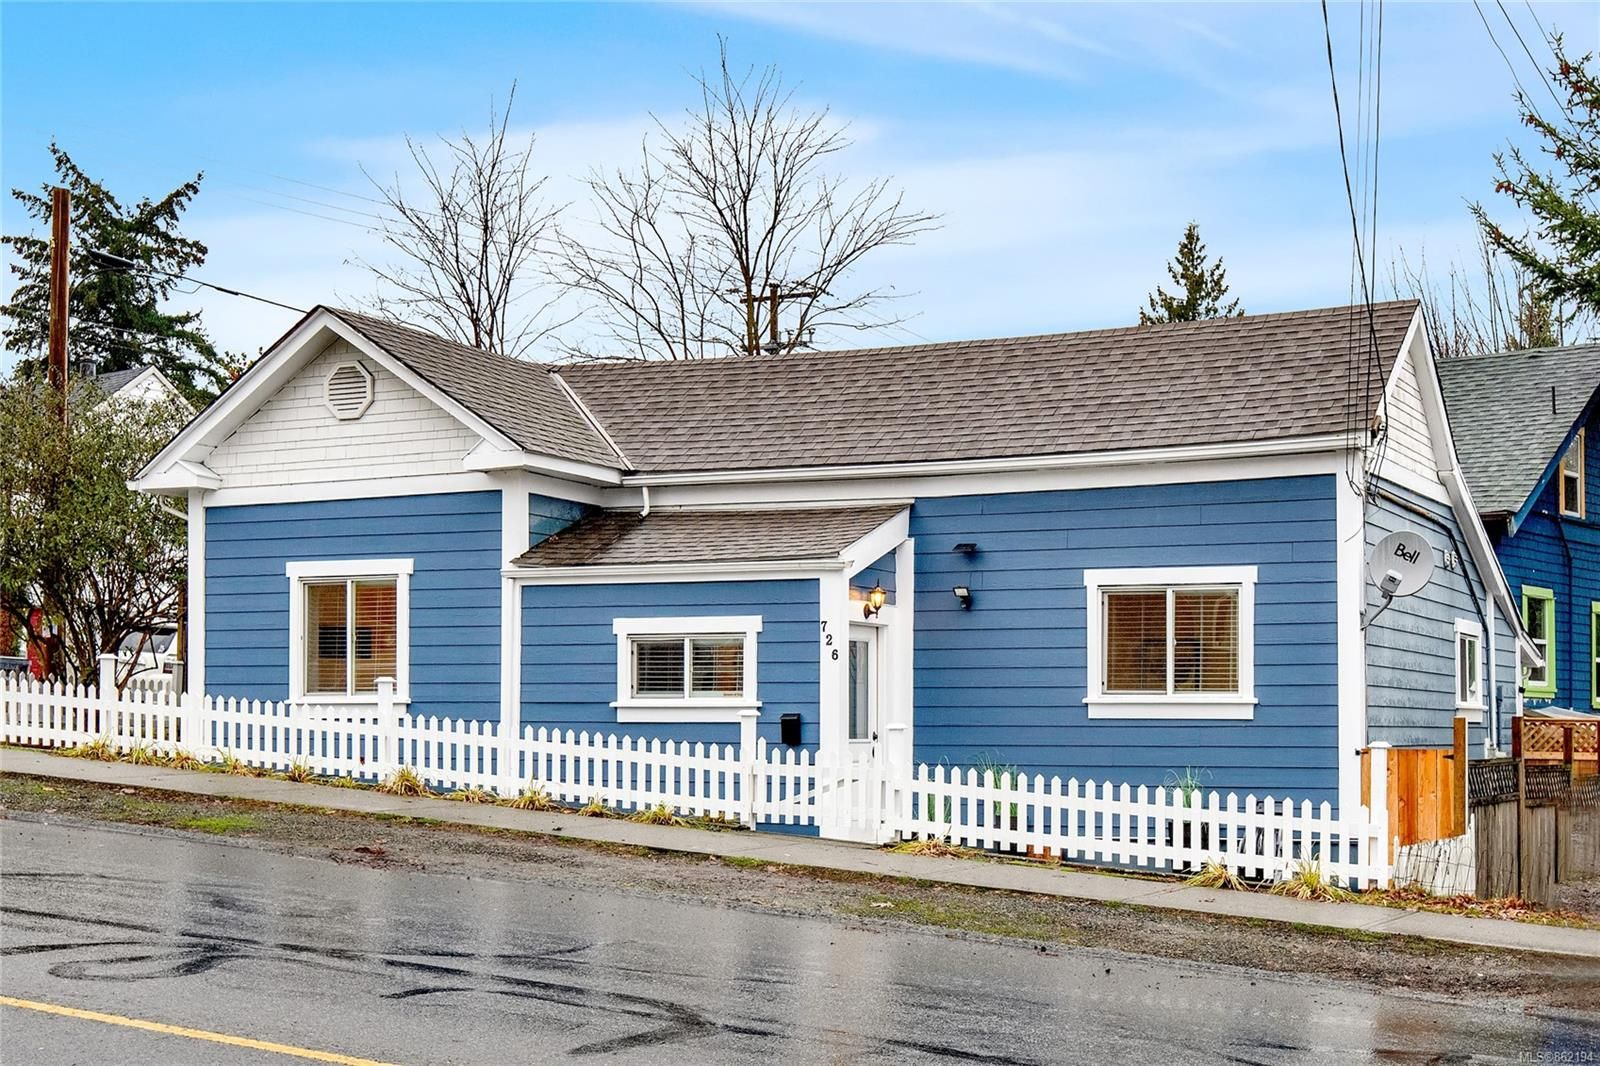 Main Photo: 726 Fitzwilliam St in : Na Old City House for sale (Nanaimo)  : MLS®# 862194